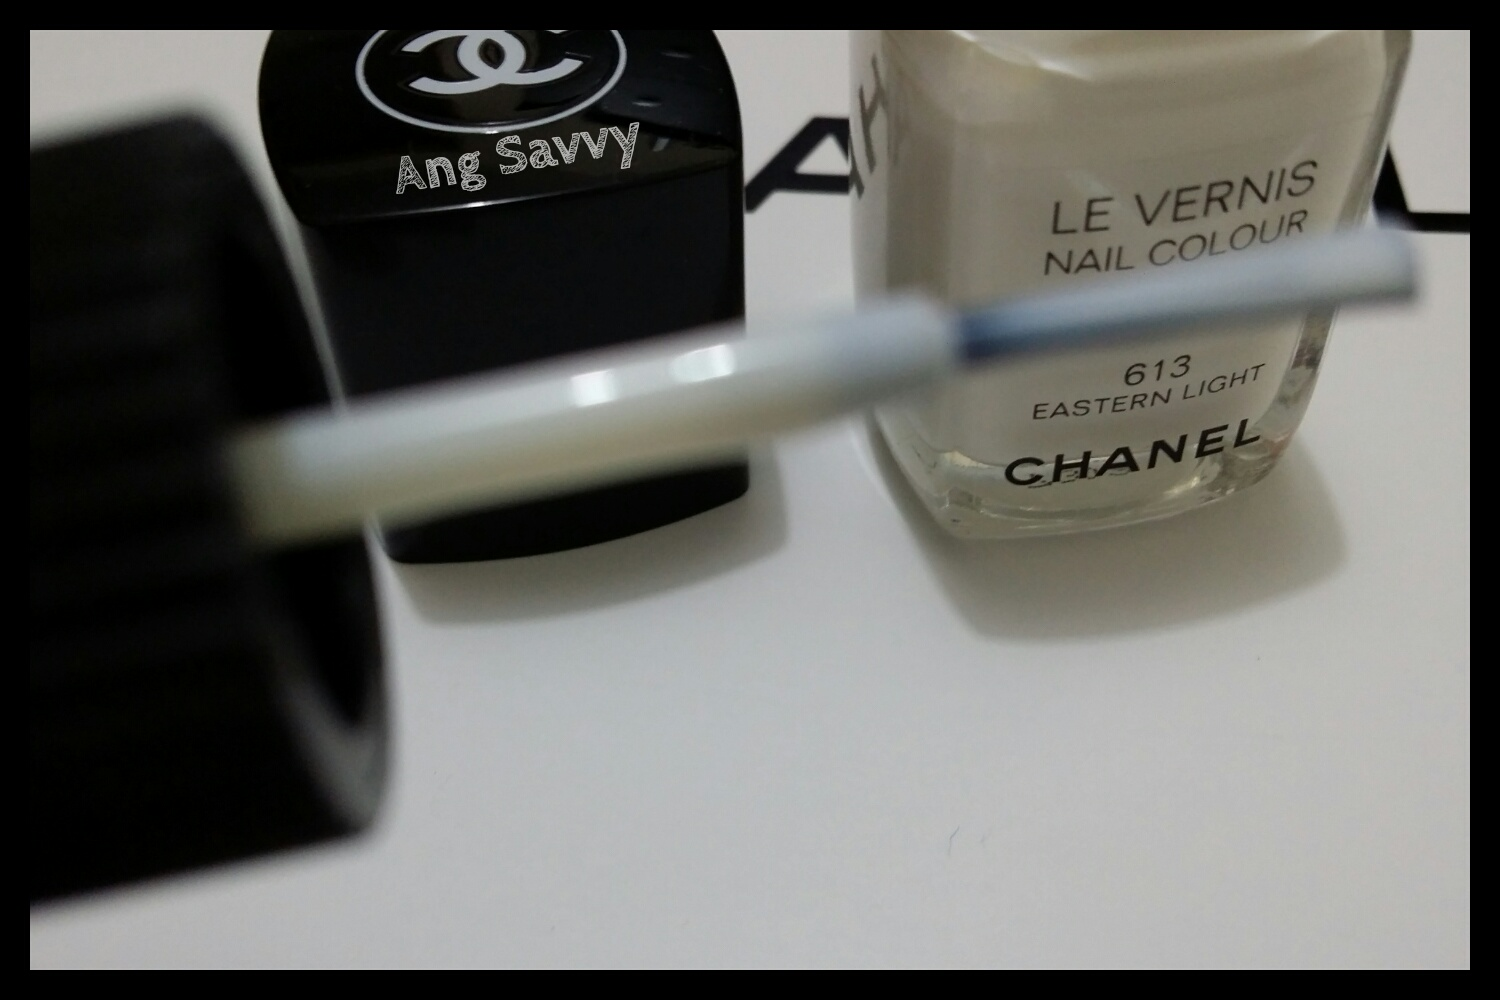 Chanel Le Vernis Nail Colour 613 Eastern Light